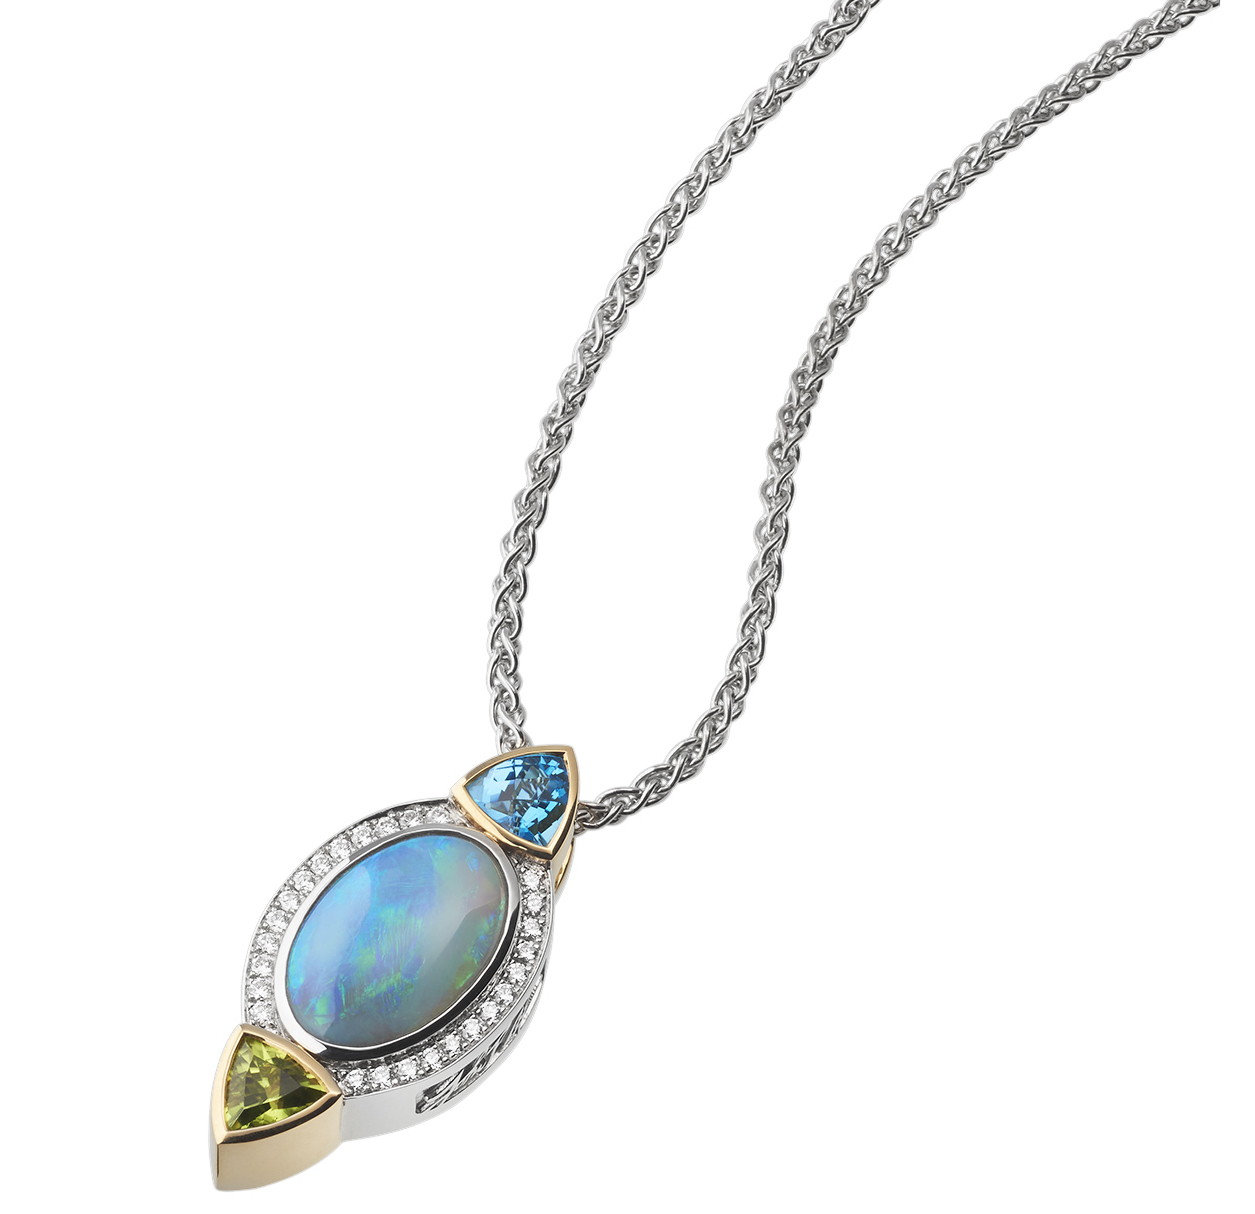 John Atencio Signature opal, topaz, and peridot pendant | JCK On Your Market